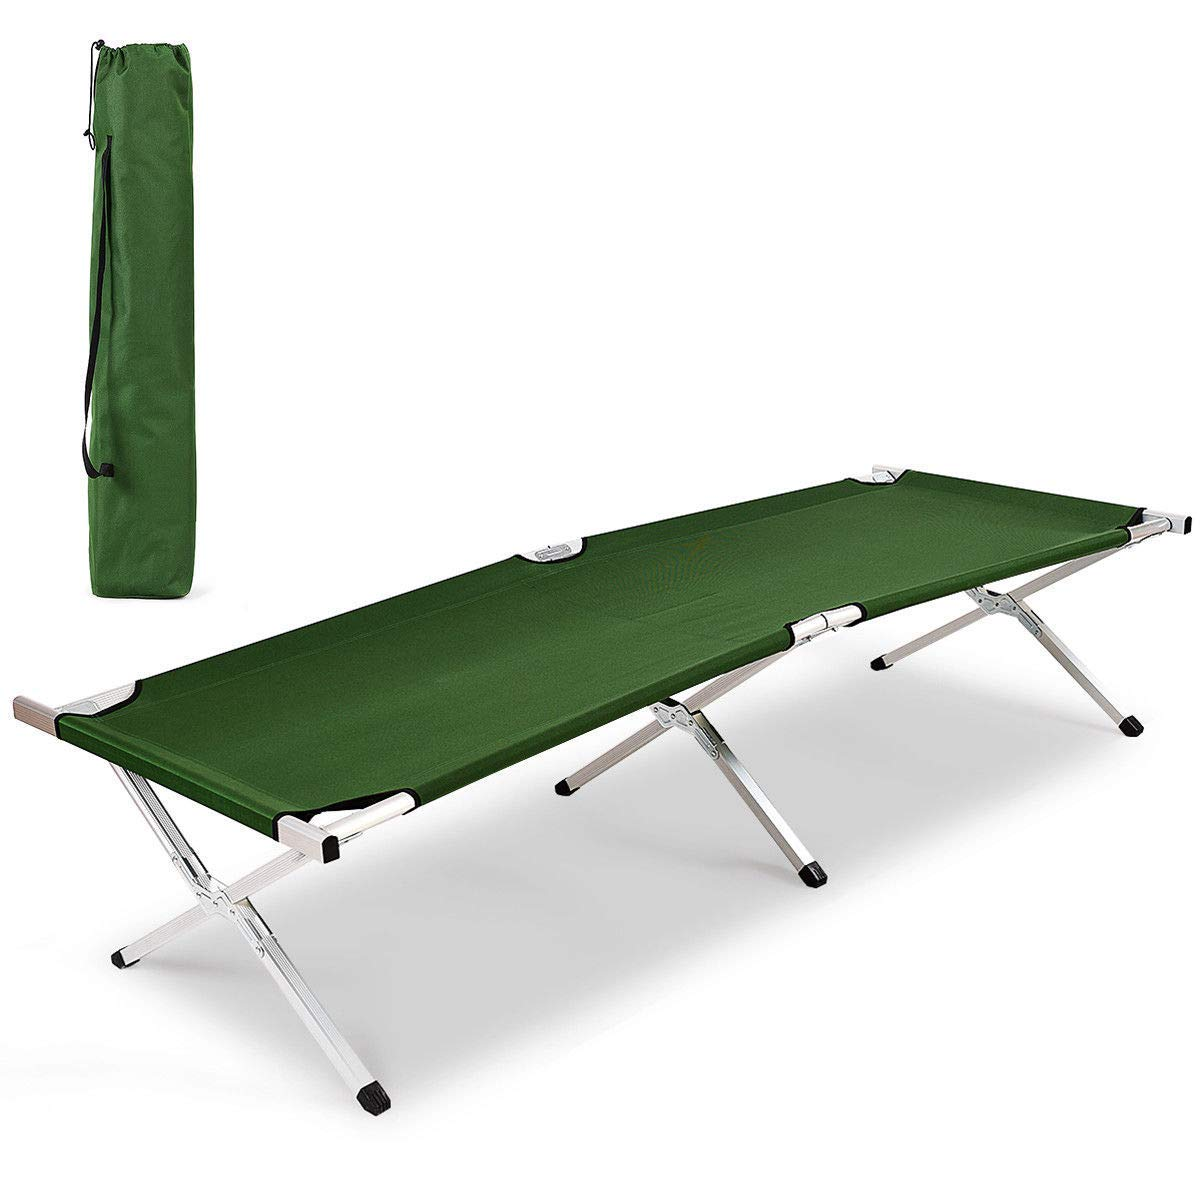 lunanice Aluminum Folding Camping Bed Outdoor Portable Military Cot Hiking Travel W/Bag